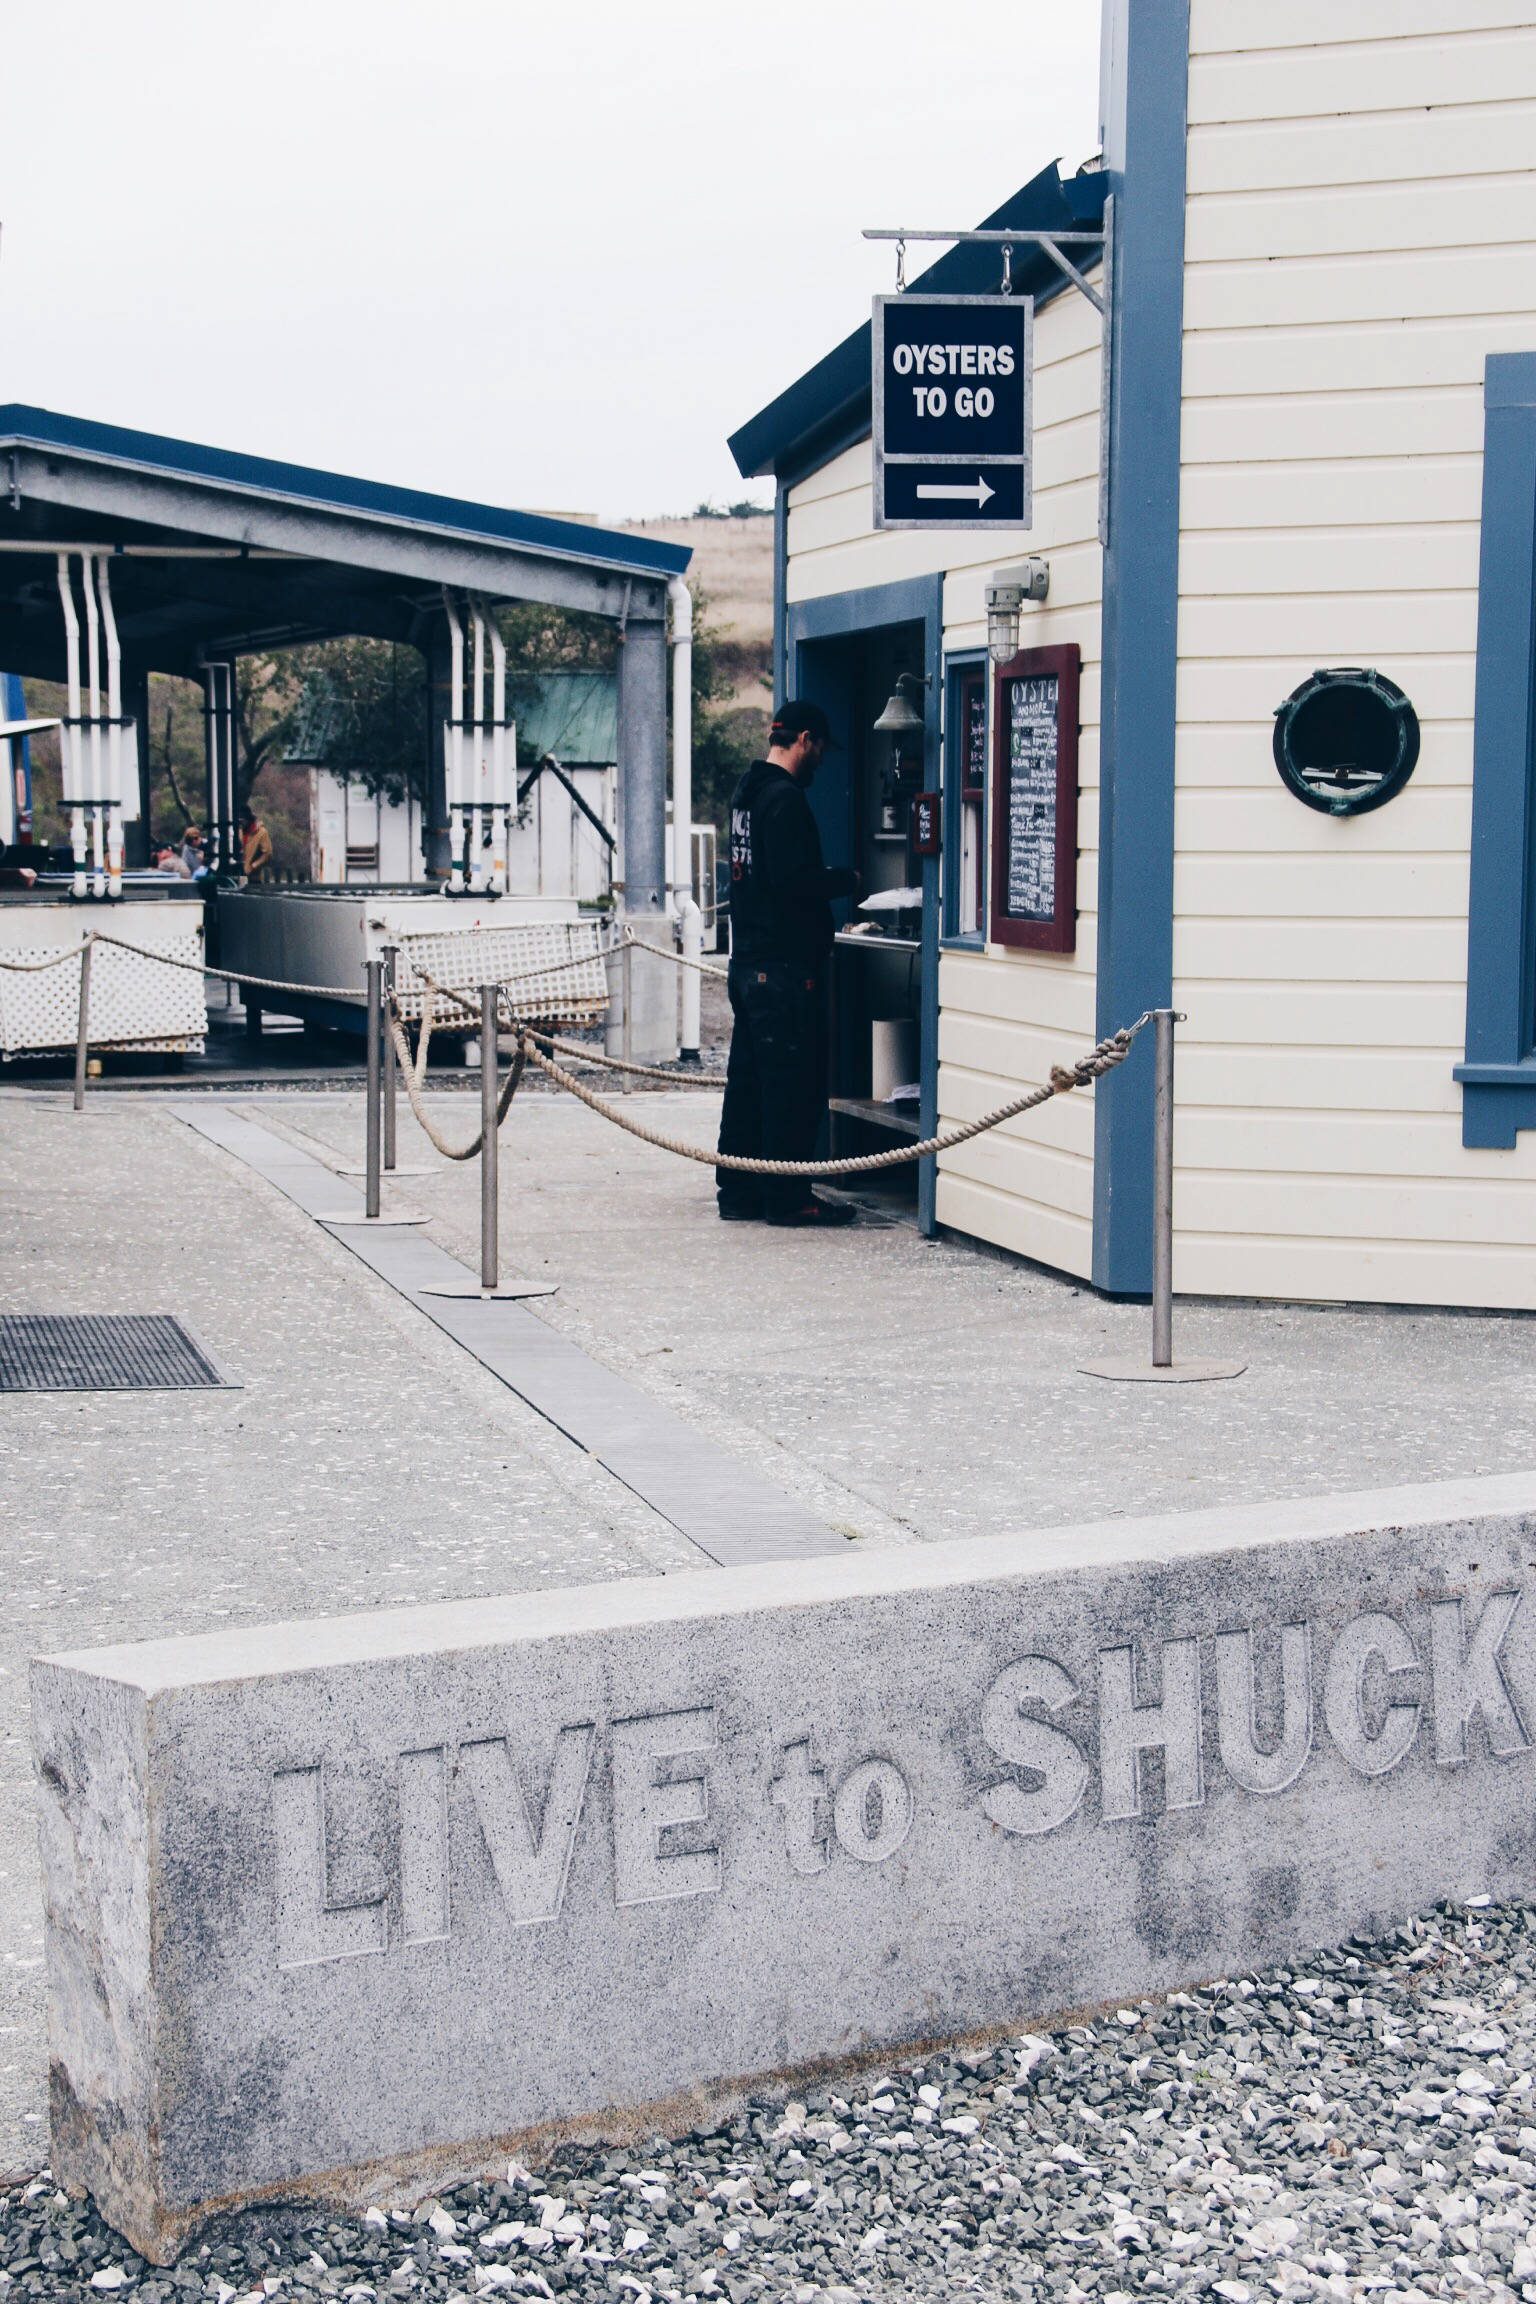 Hog Island Oyster Co | Live to Shuck